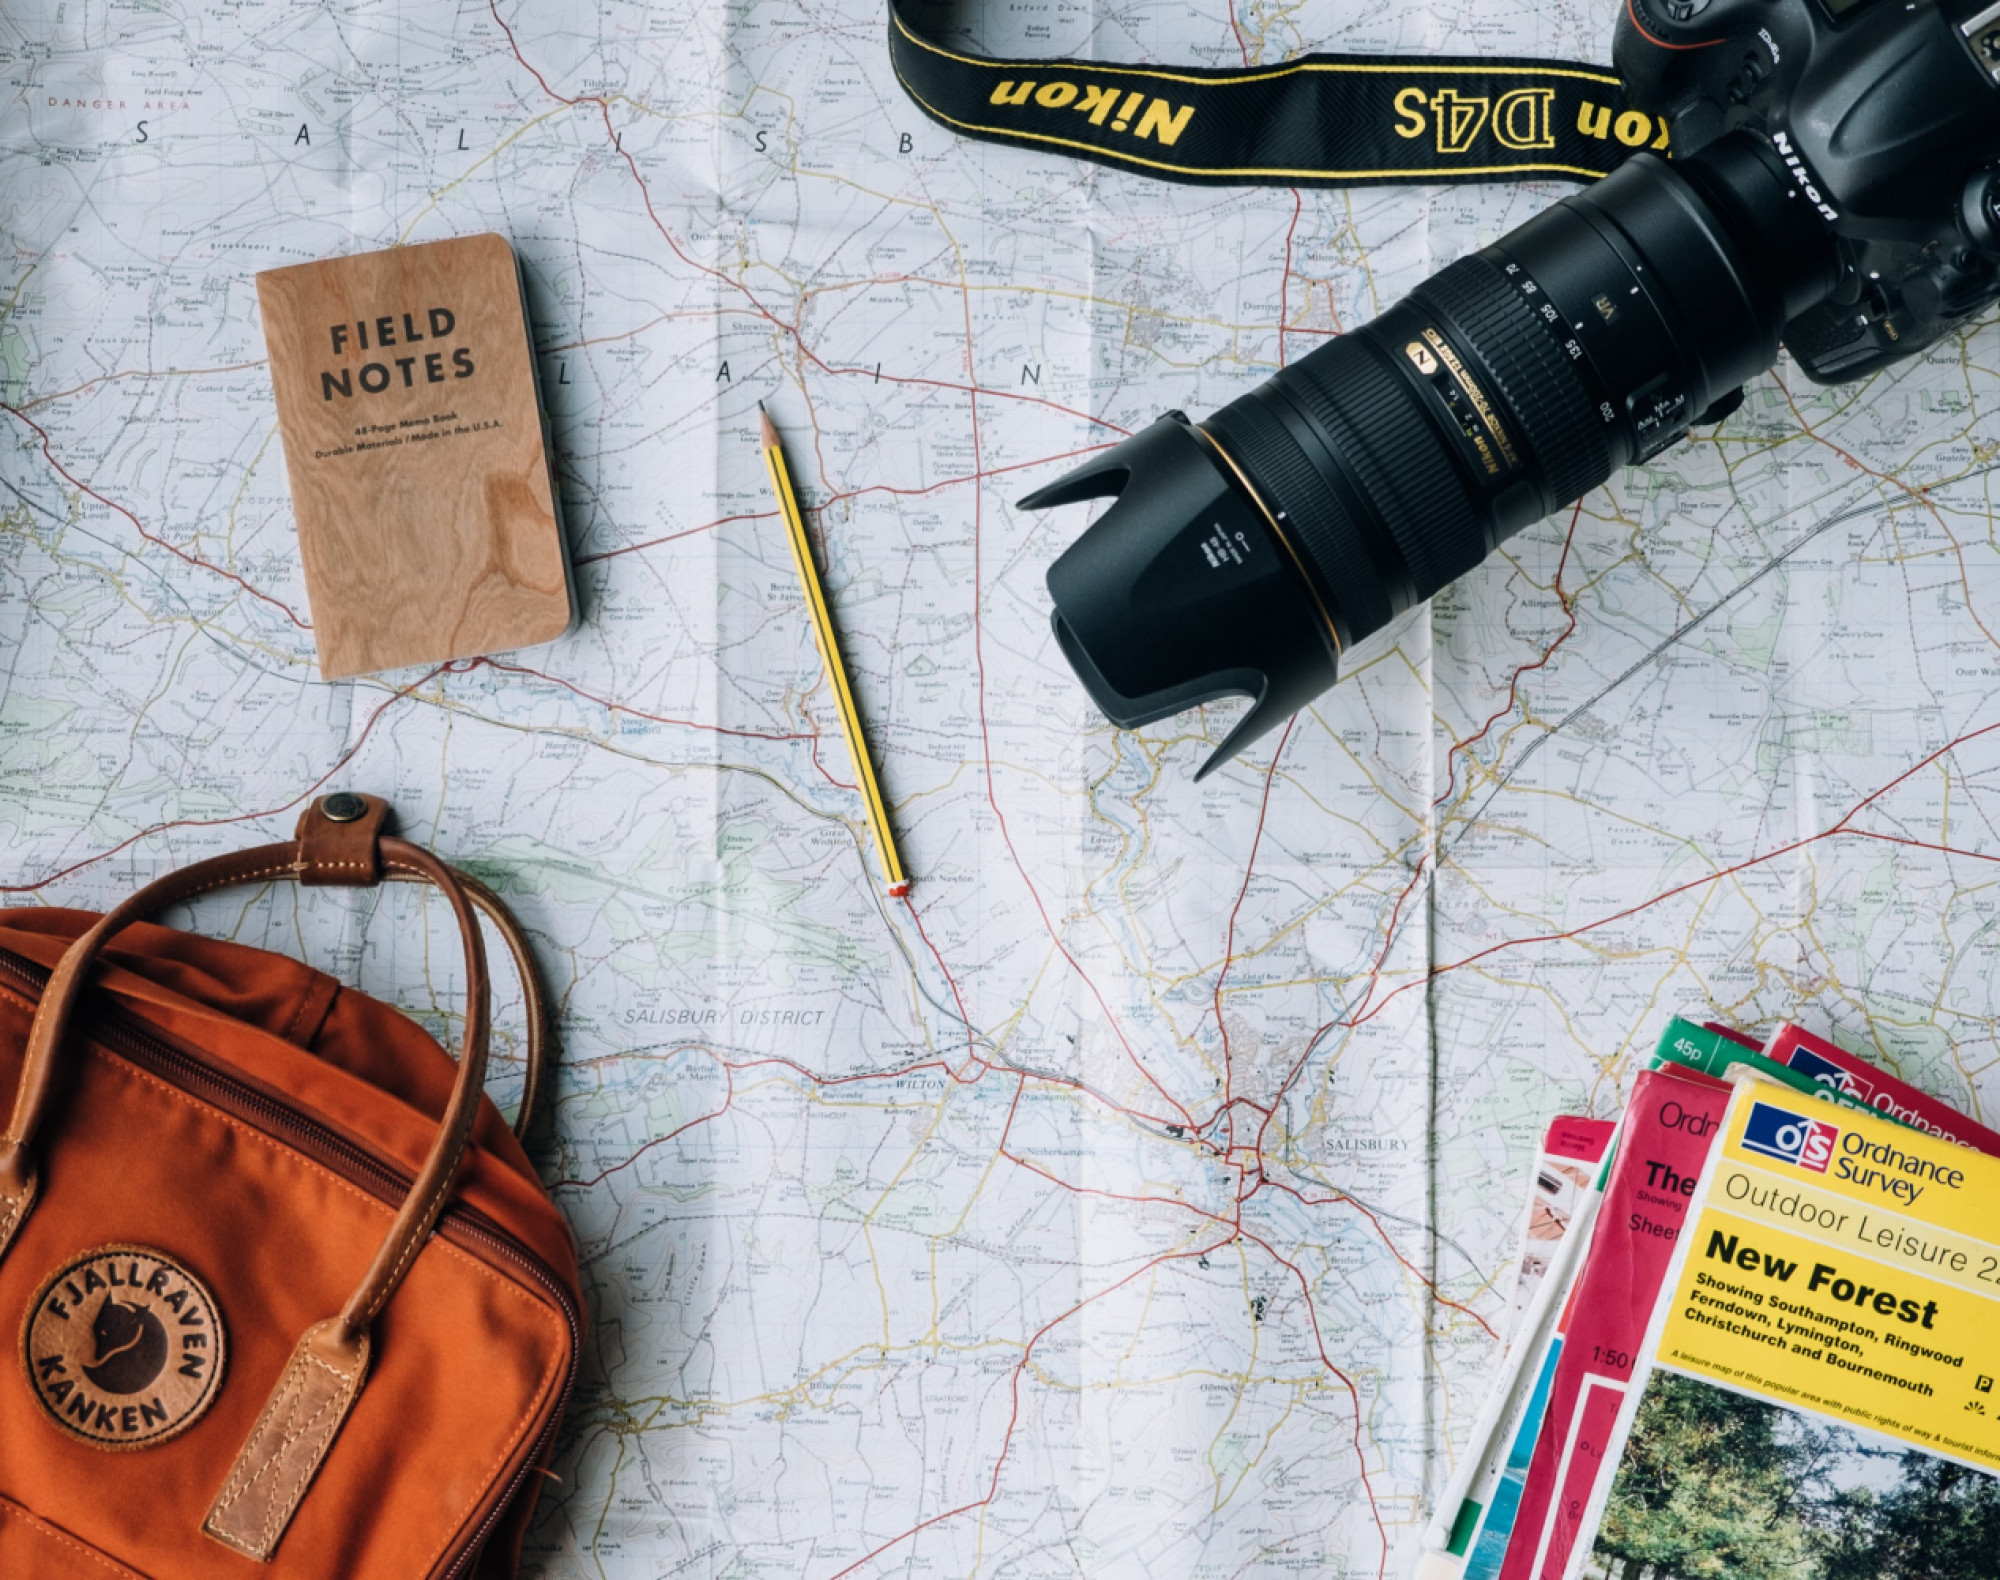 7 Summer Travel Ideas While Social Distancing